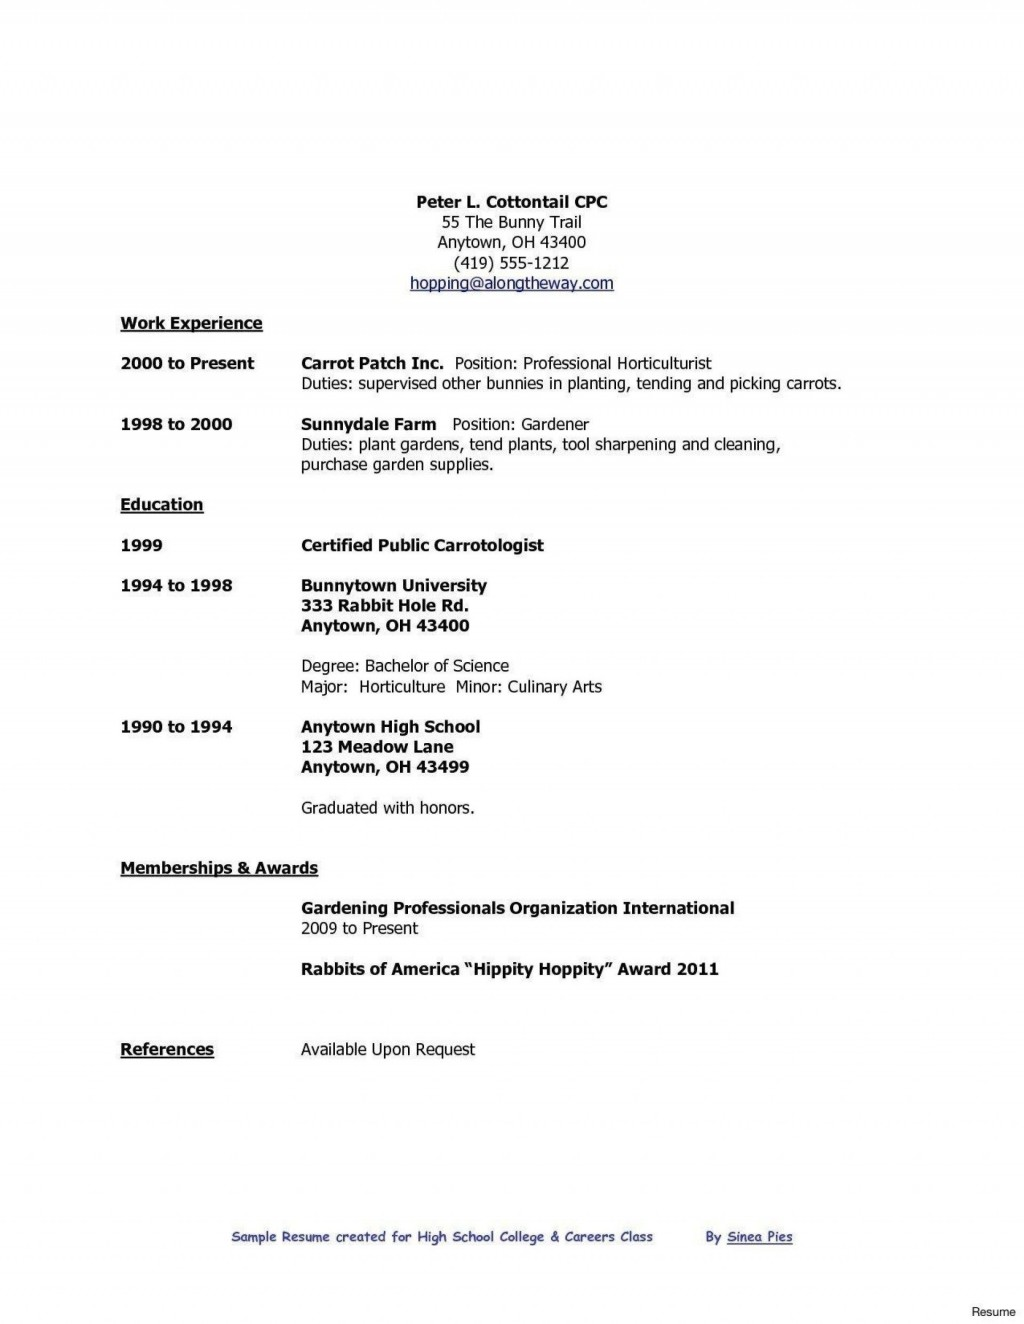 009 Archaicawful Free High School Graduate Resume Template Def  TemplatesLarge